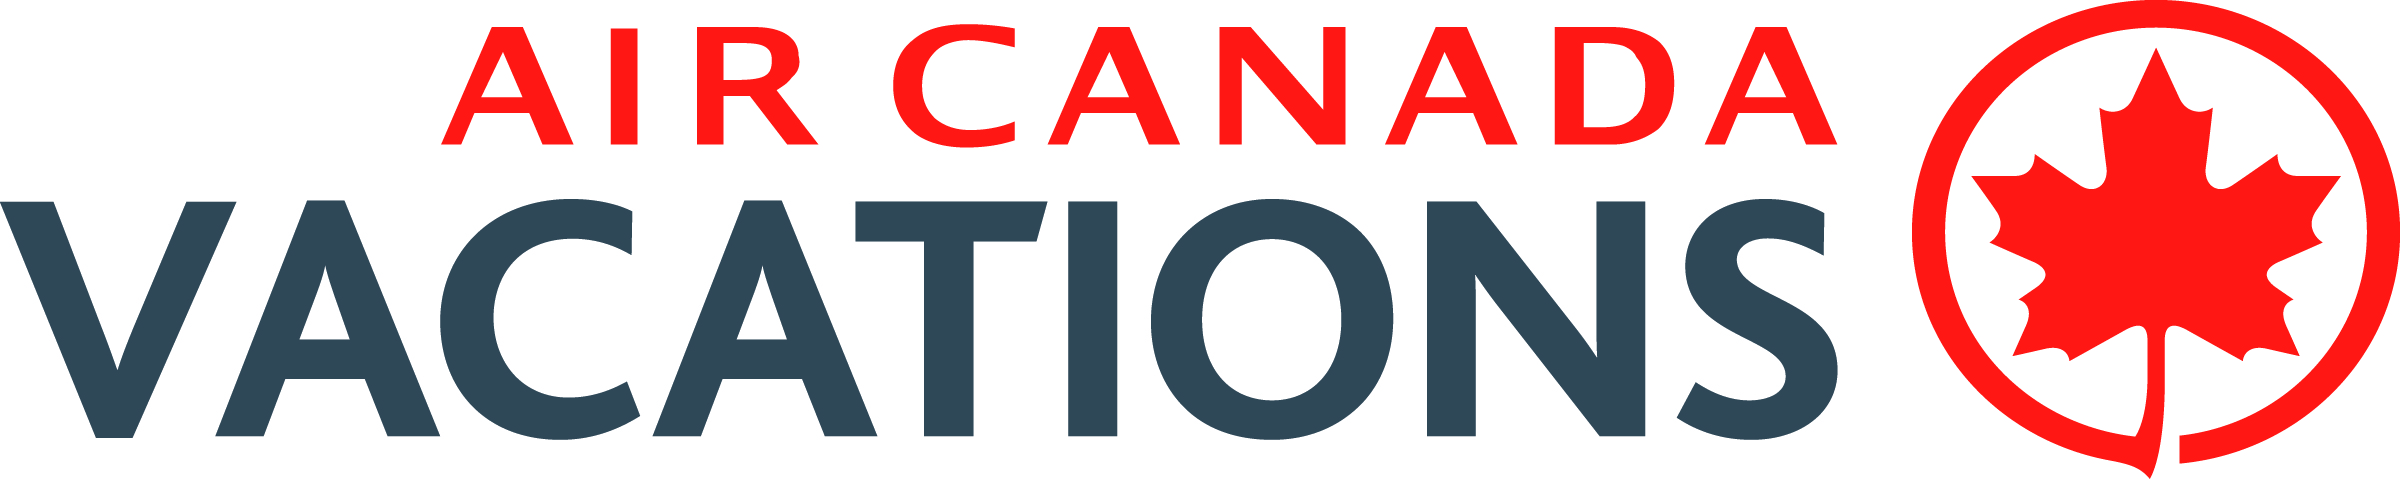 356a537d099bf3 Destination Weddings with Total Advantage   Air Canada Vacations!